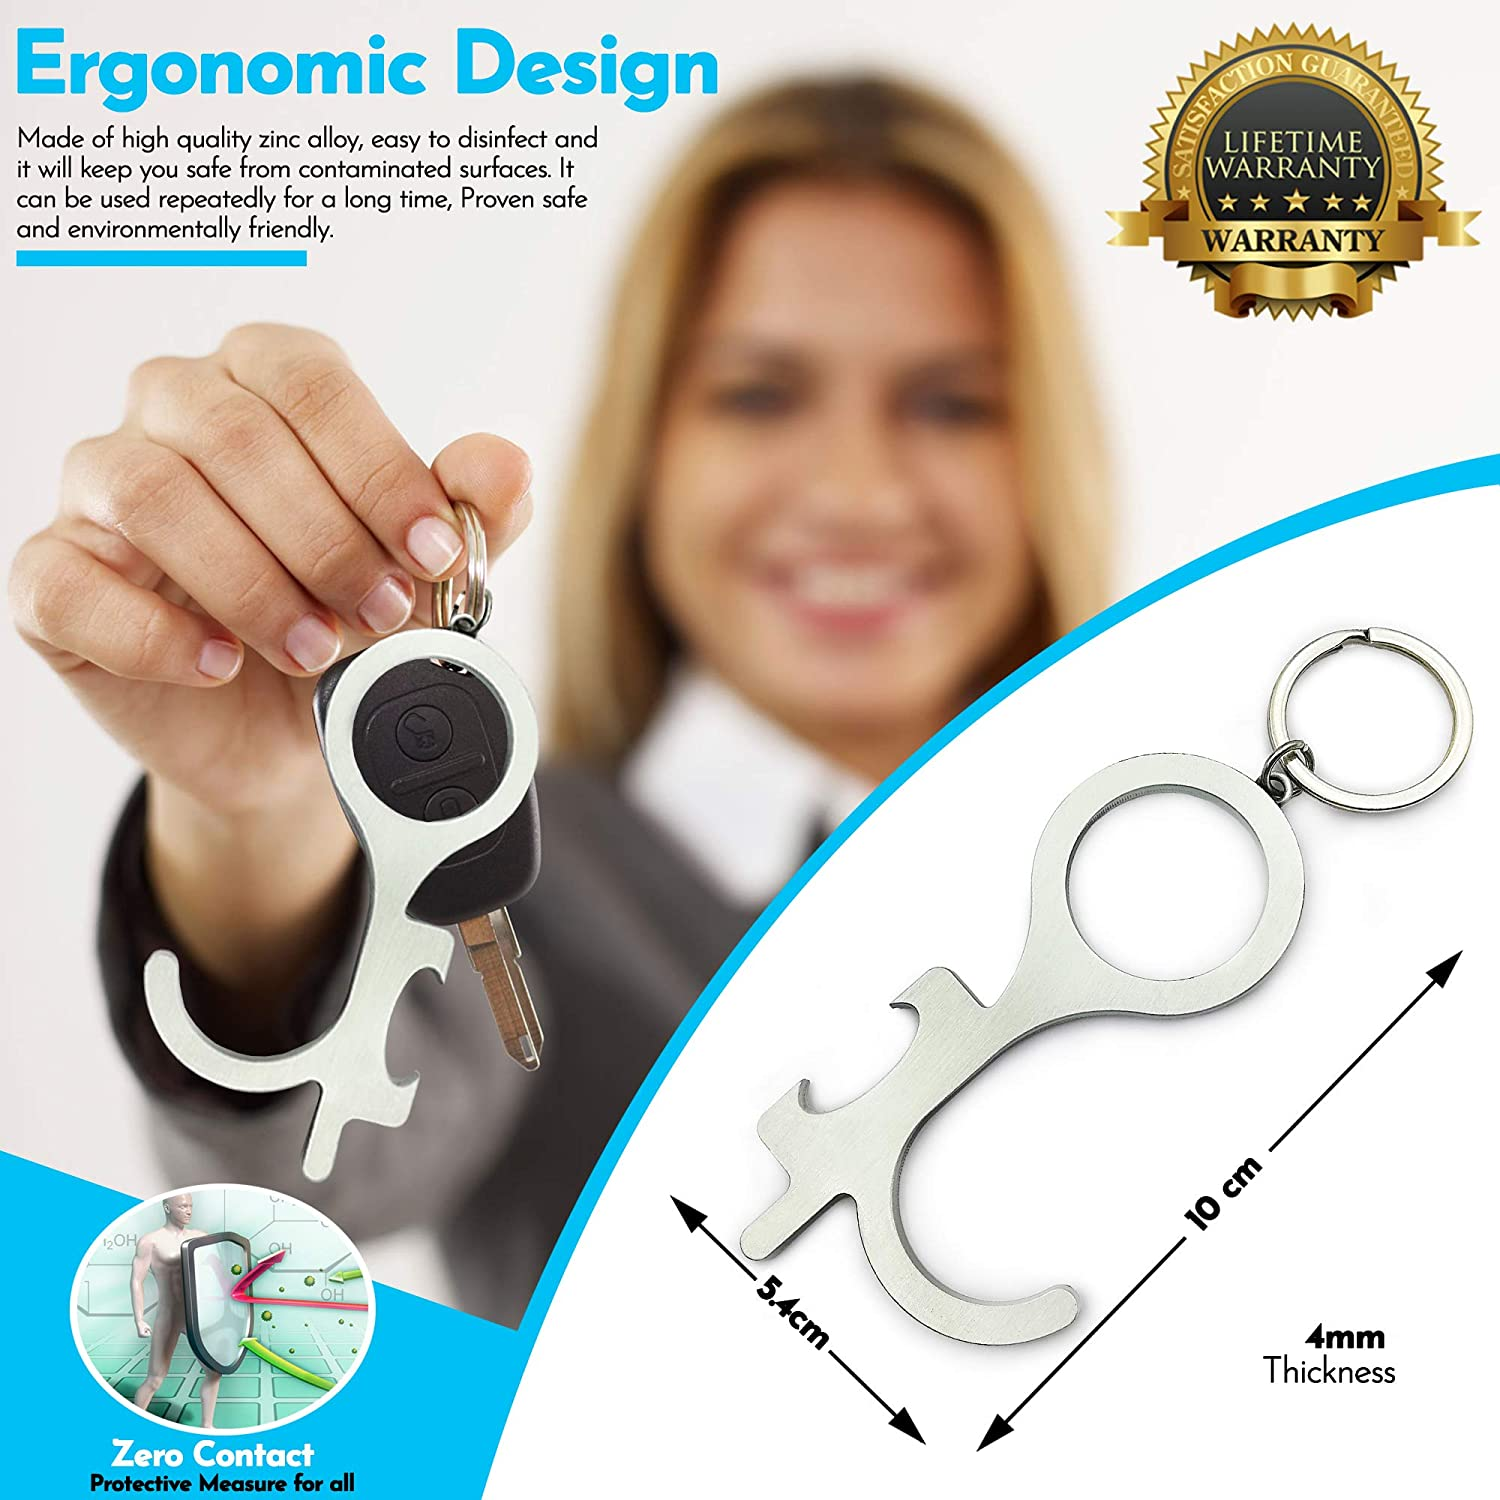 Premium No Touch Door Opener Tool /& Bottle Opener Touchless Button Pusher /& Key Holder Kit 2 pcs, Silver Hands Free Keychain Utility Hook Tool Like a Clean Key /& Door Closer